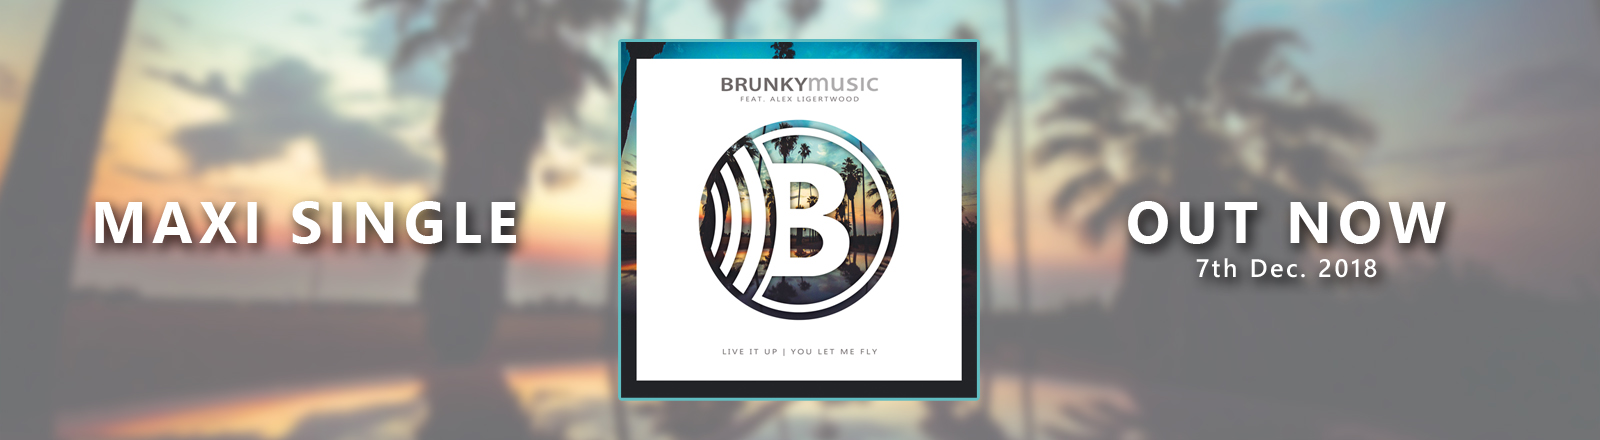 "Brunky Music ""Live it up""[feat. Alex Ligertwood] available on CD, vinyl and digital"